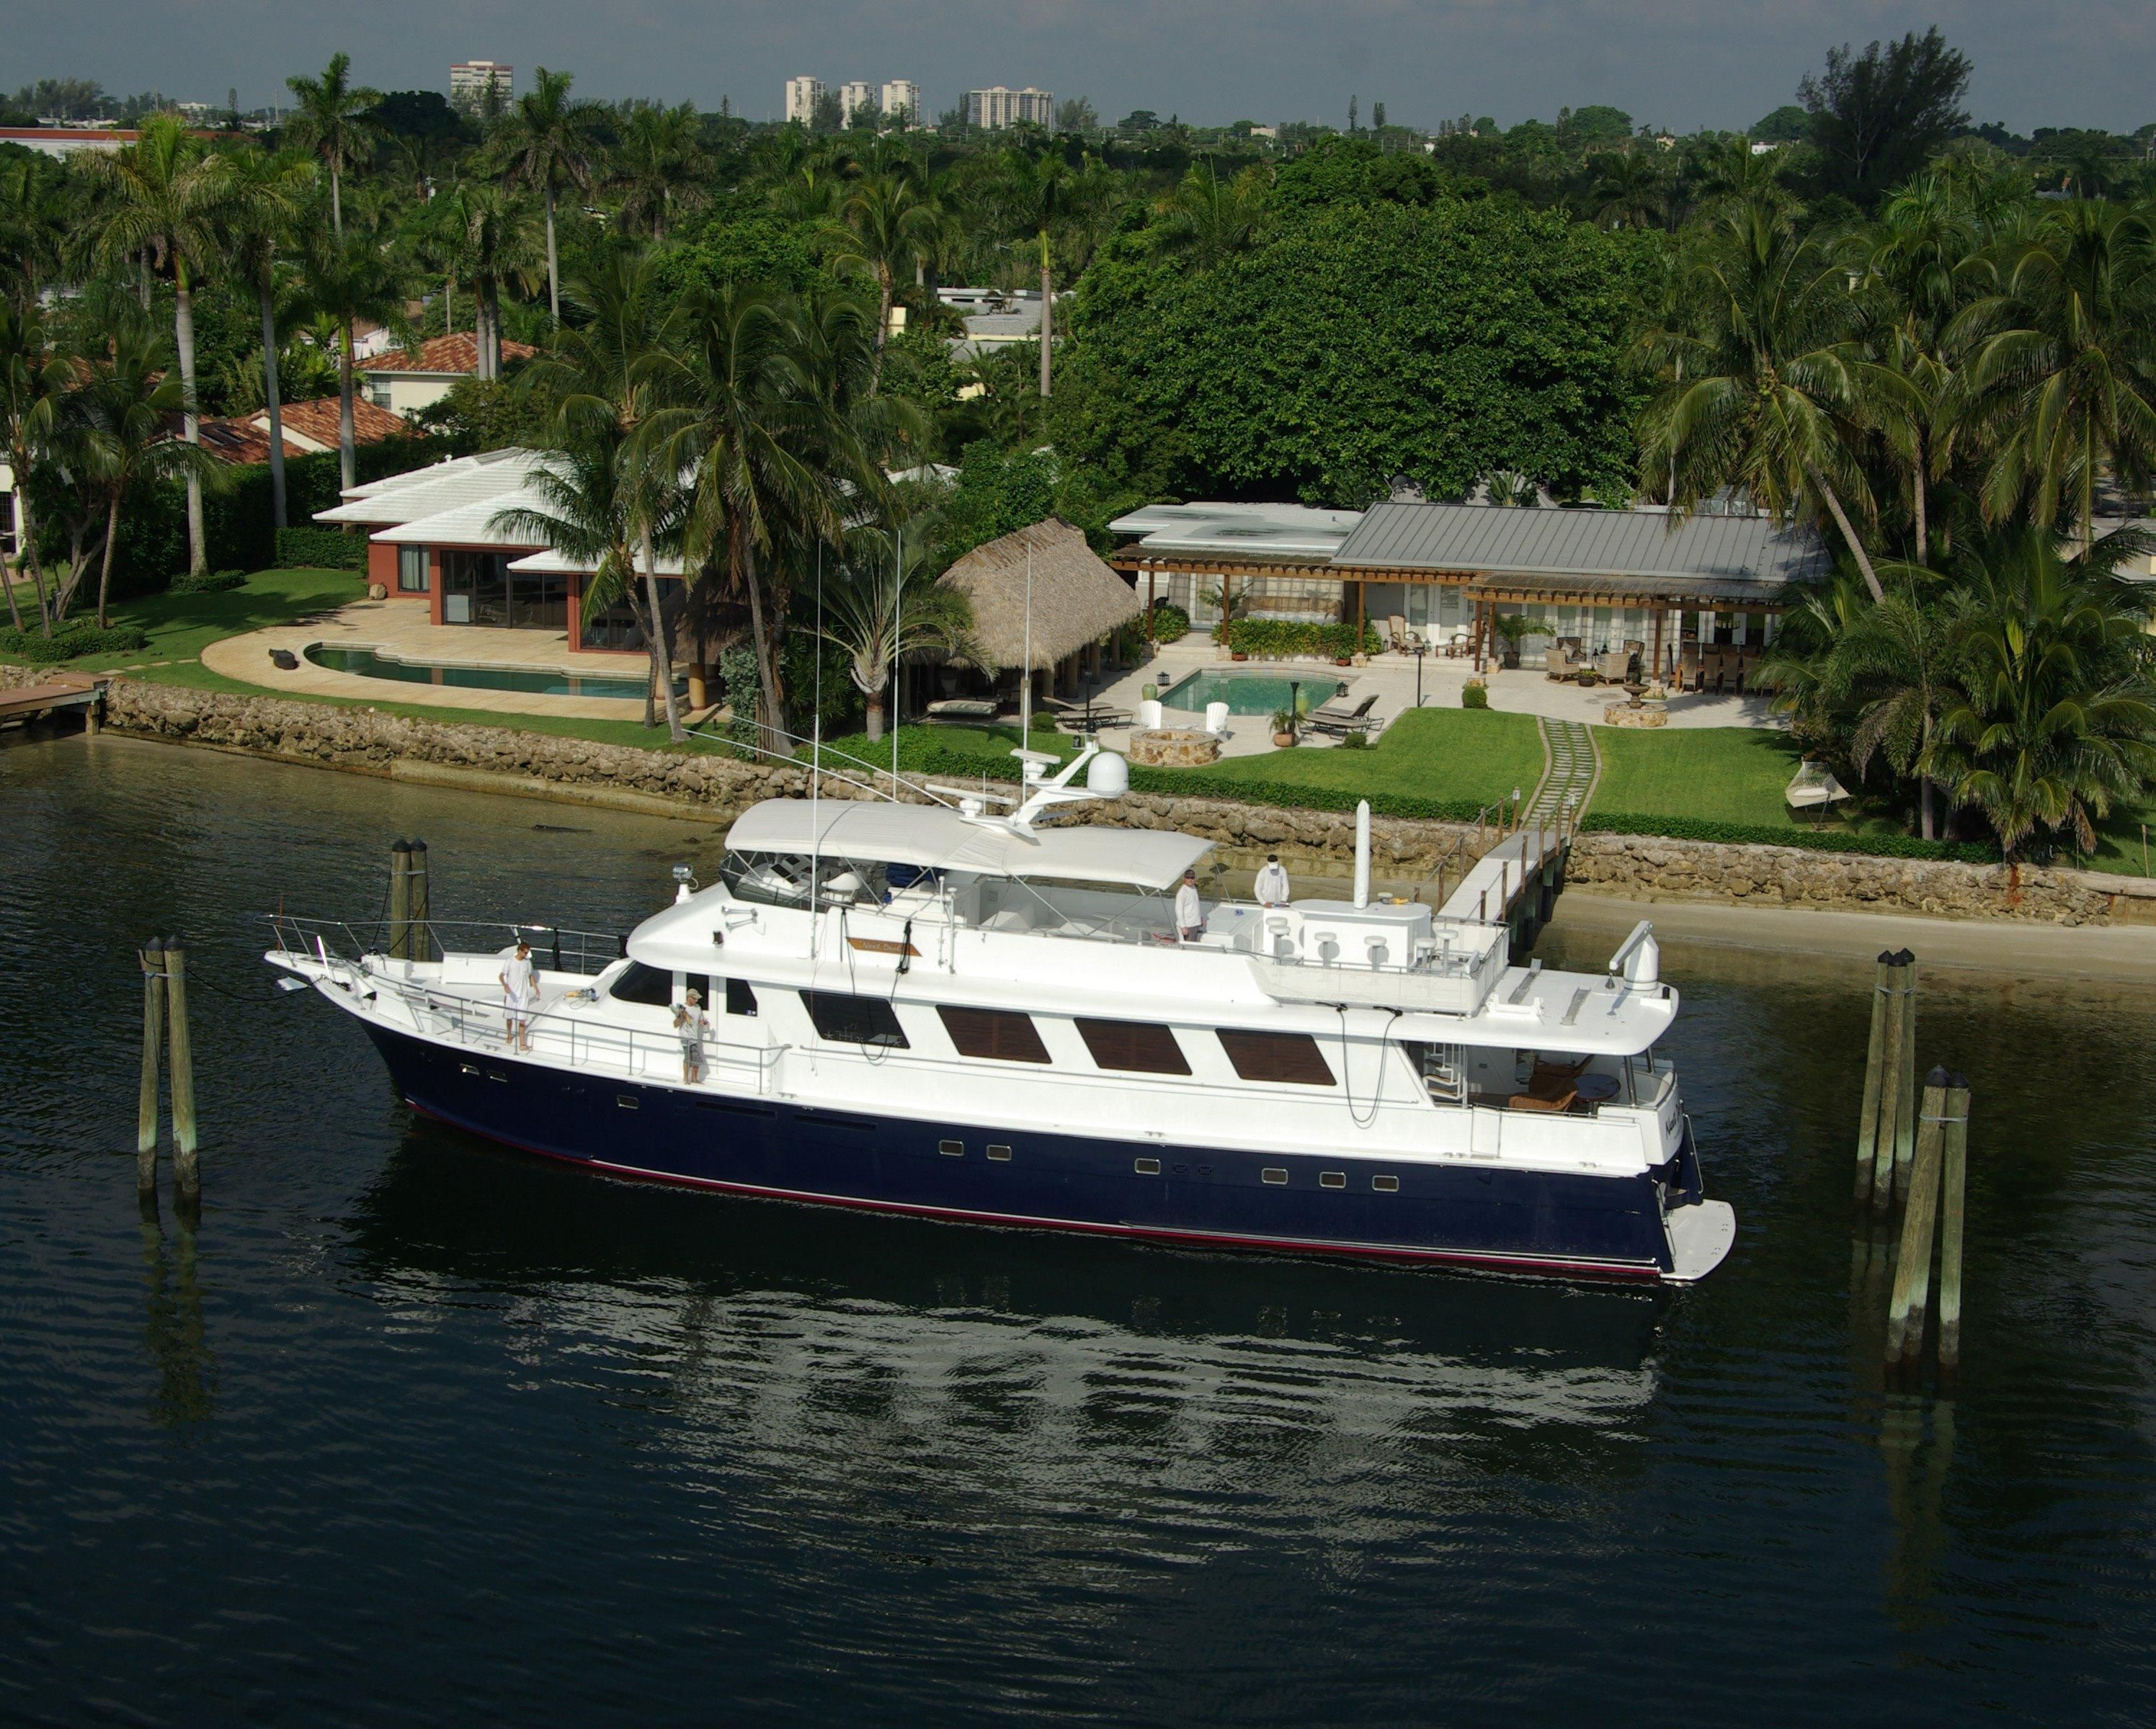 1986 hatteras 90 motor yacht power boat for sale www for Boat motors for sale in florida